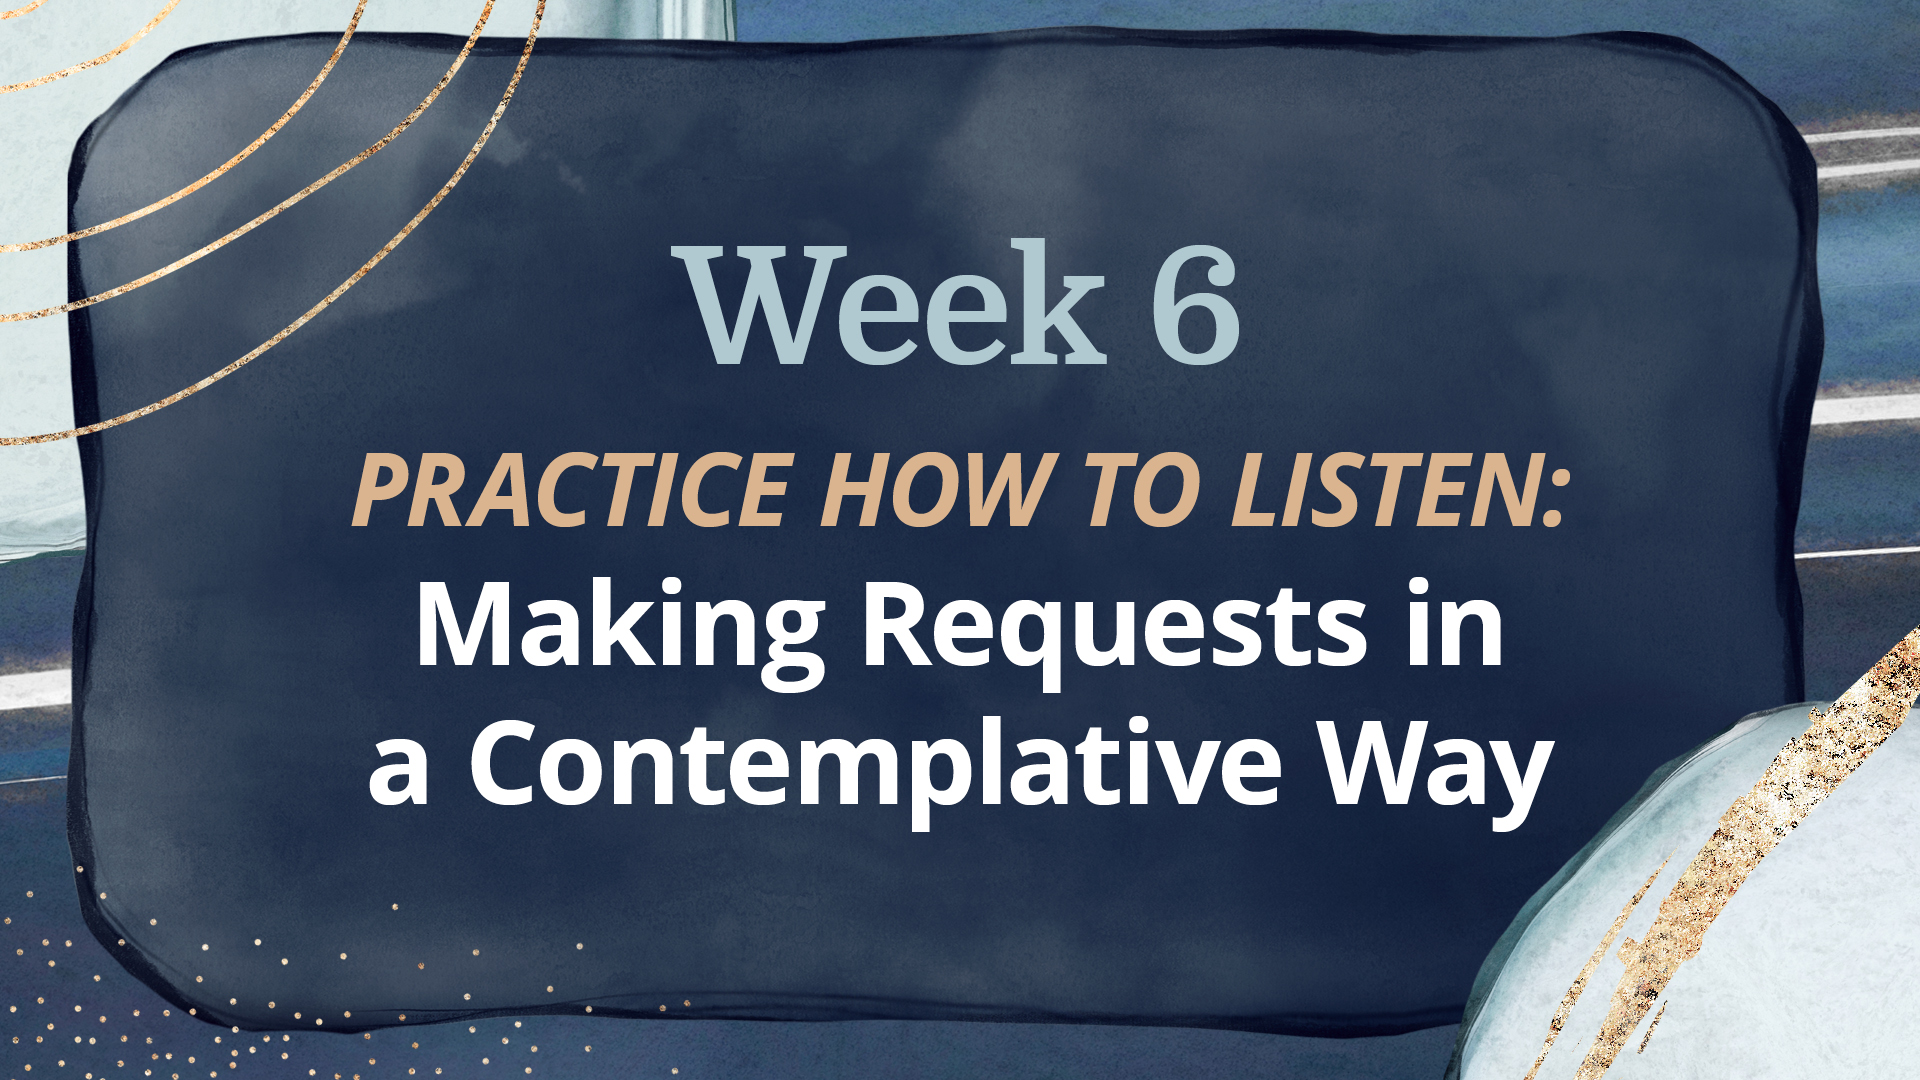 Week 6: Making Requests in a Contemplative Way